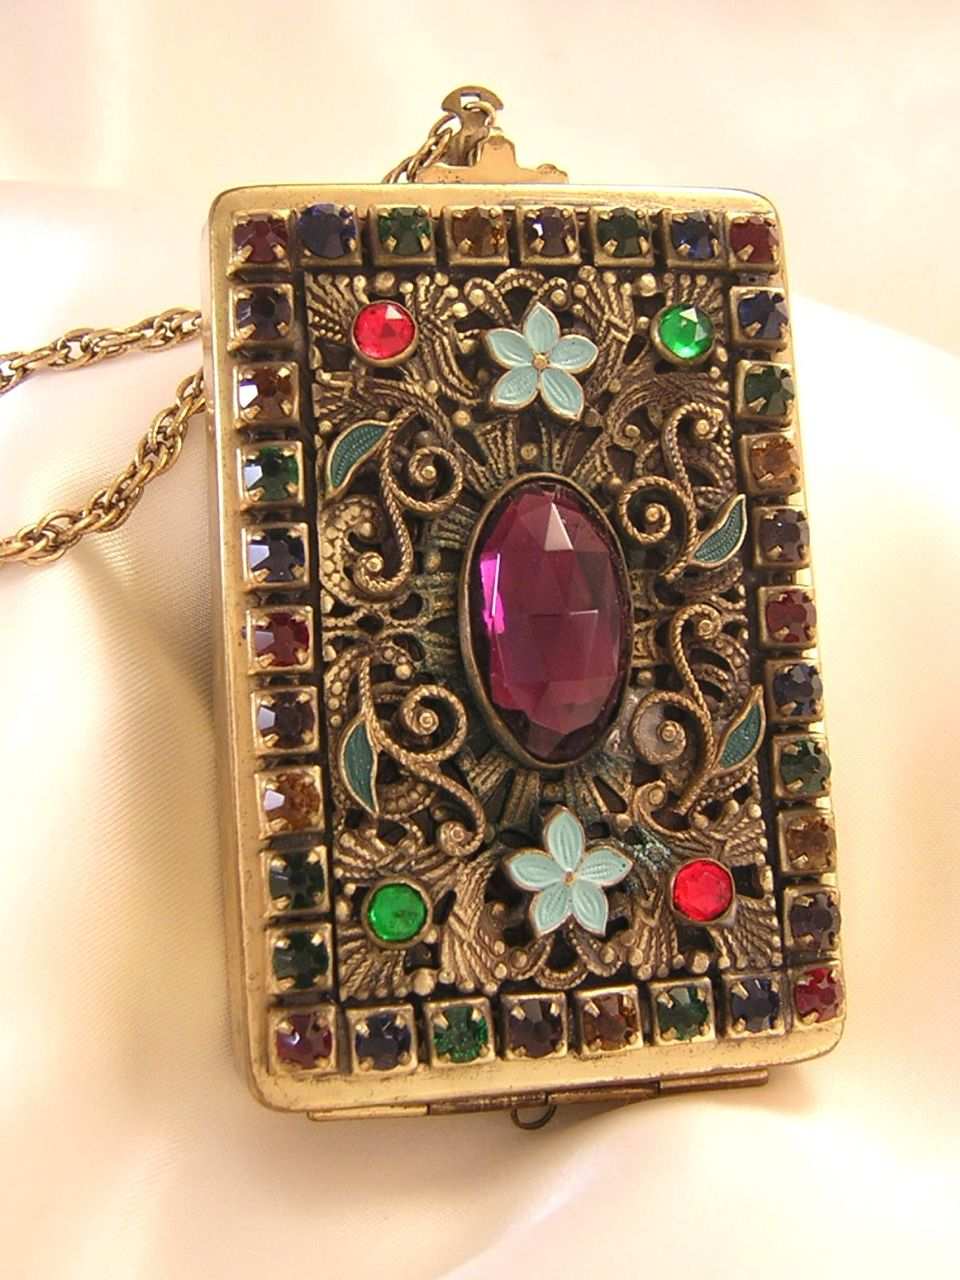 Czech  Art Deco Jeweled and Enamelled Compact  Dance Purse